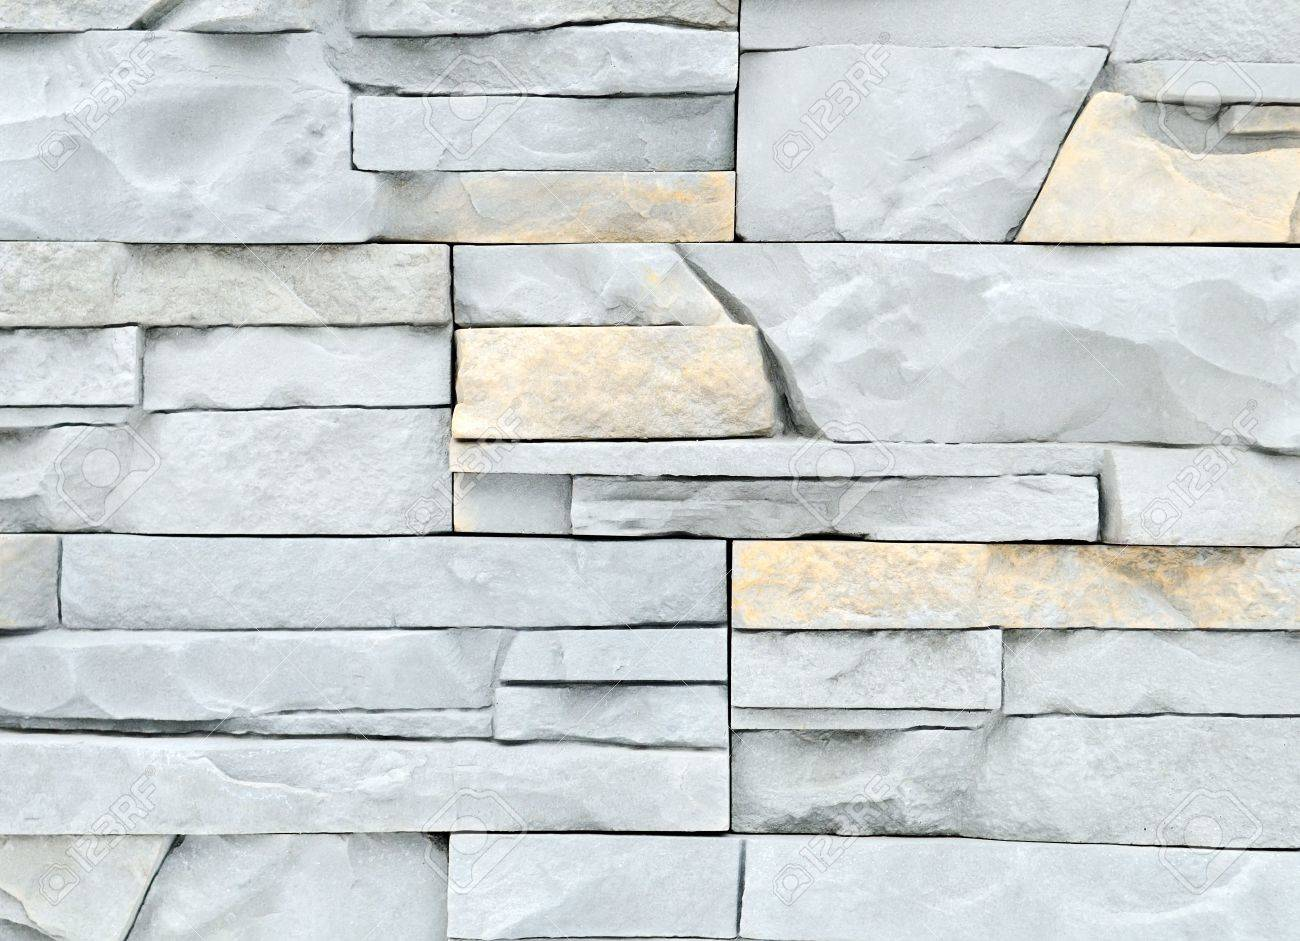 Brick stone exterior and interior decoration building material for wall  finishing Stock Photo   6504350Brick Stone Exterior And Interior Decoration Building Material  . Exterior Wall Finishing Materials. Home Design Ideas